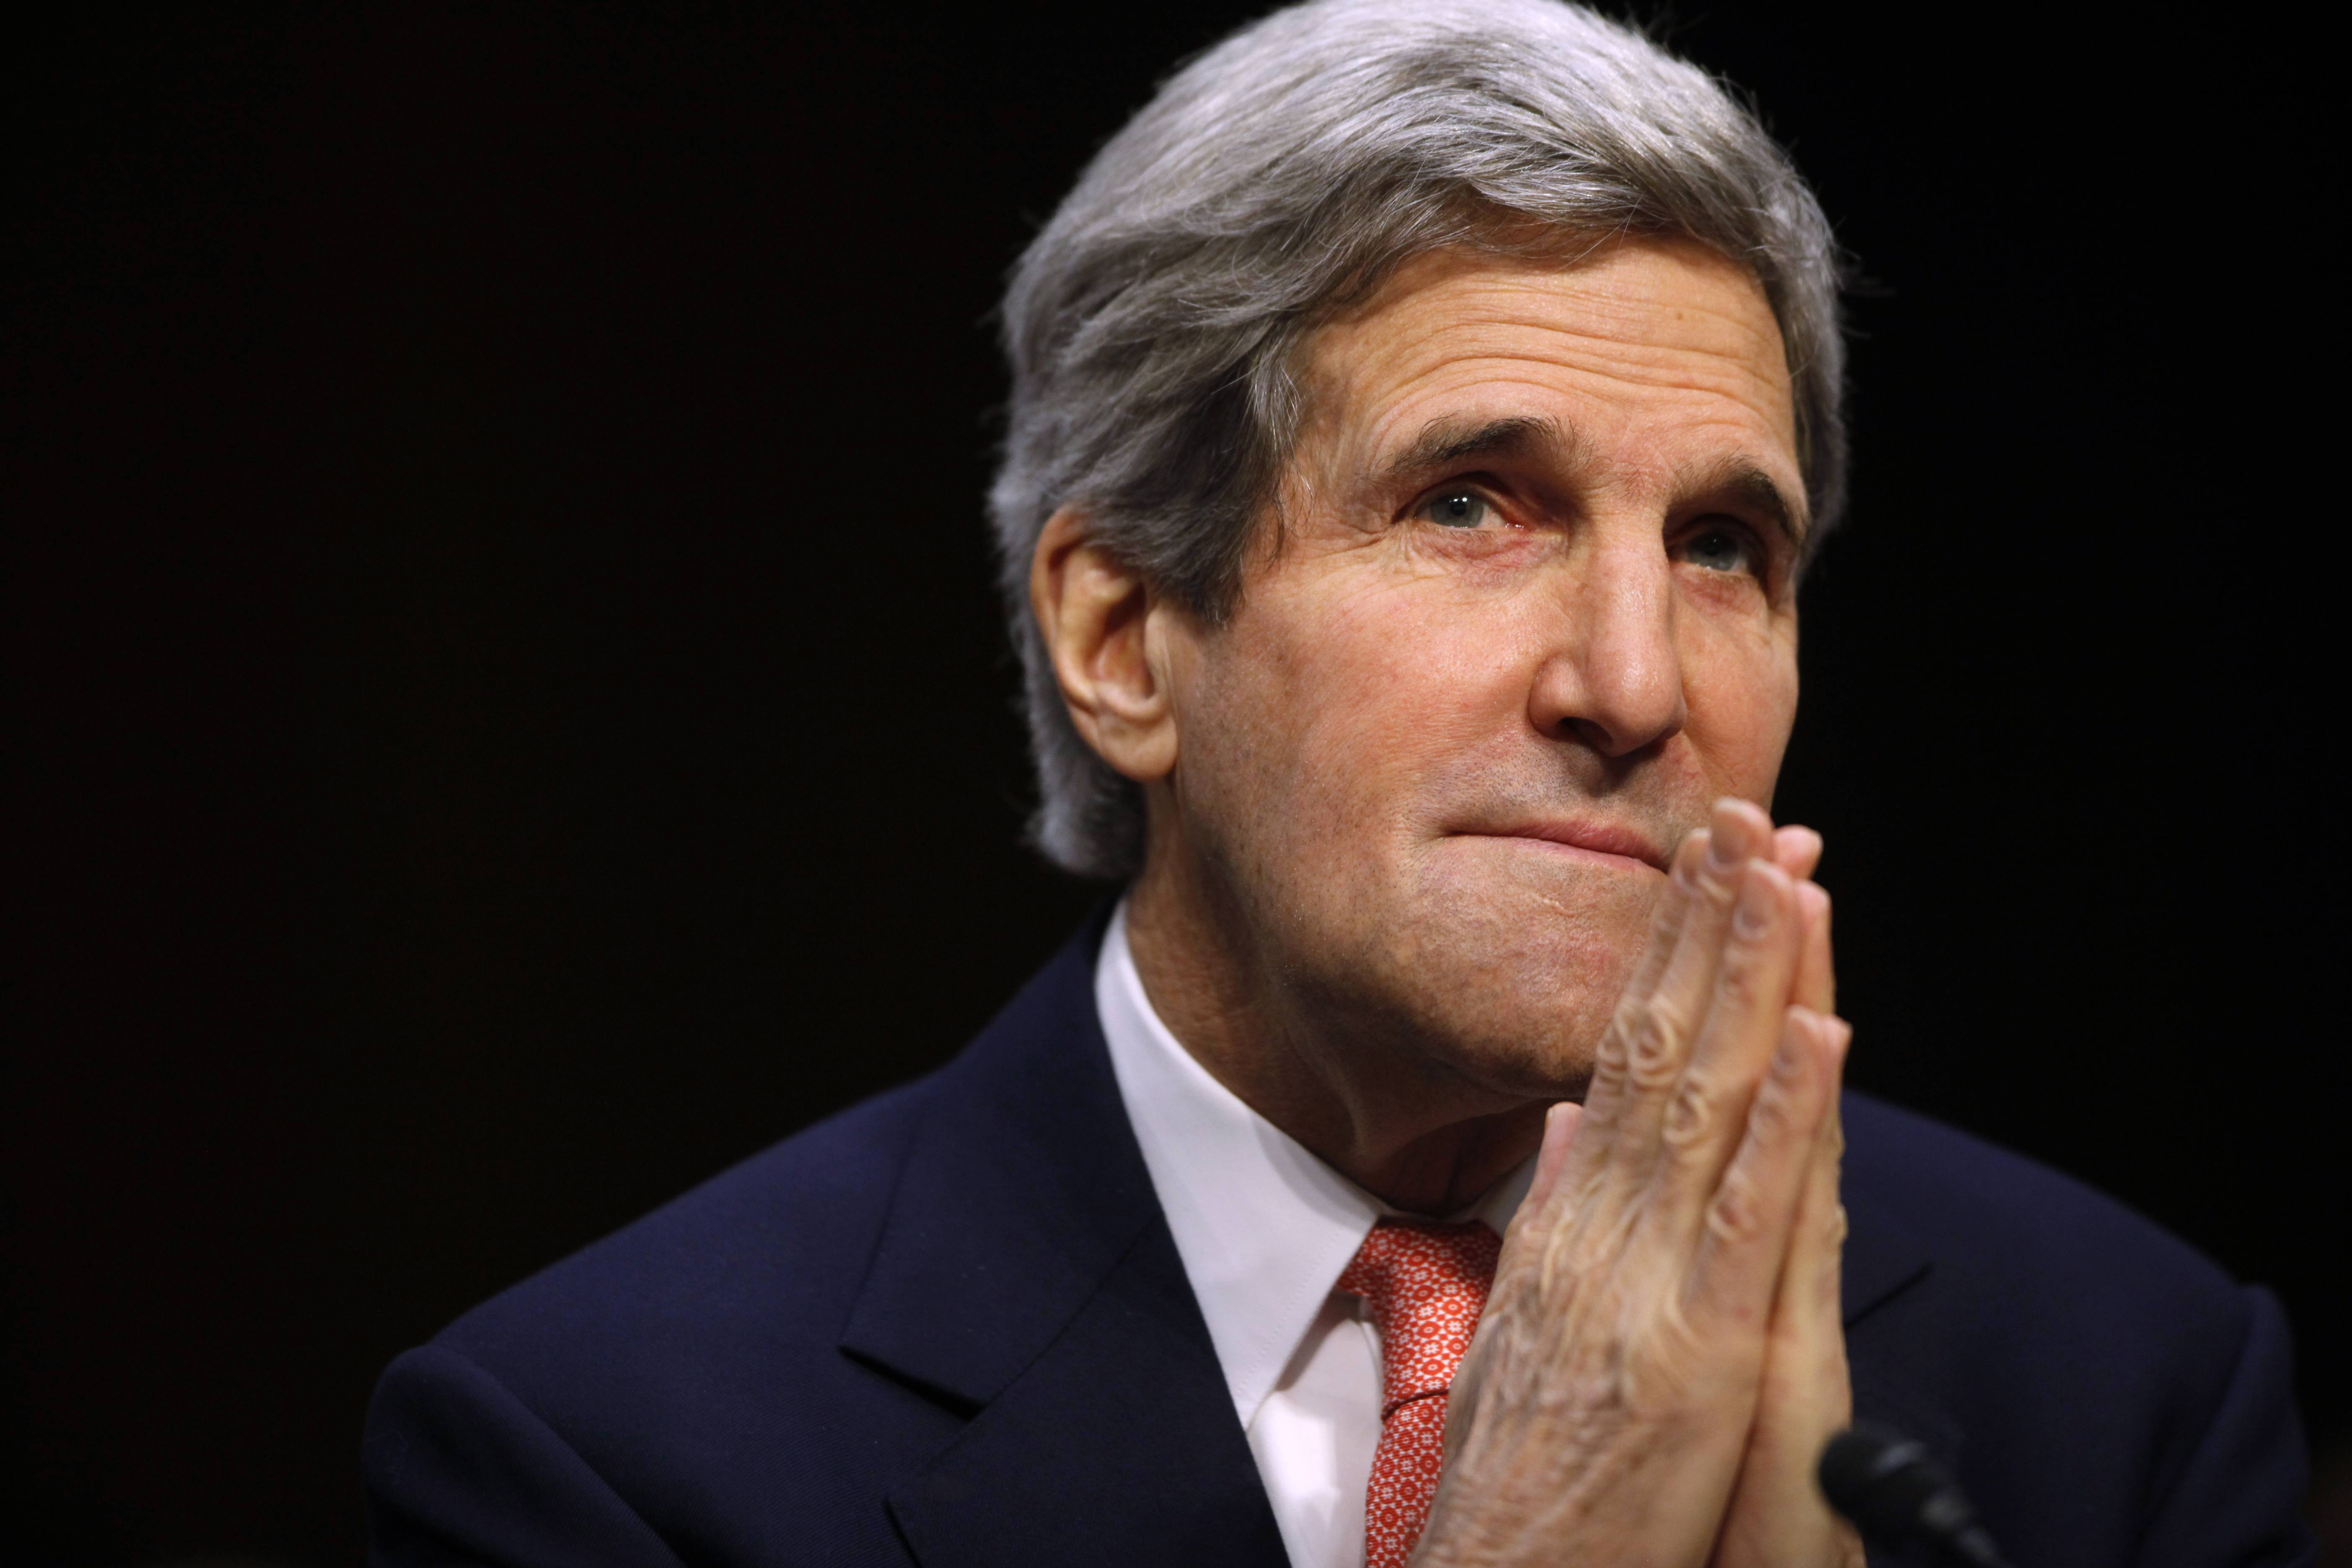 Secretary of State John Kerry testifies before the Senate Appropriations subcommittee on Foreign Operations and Related Programs on Thursday. In his opening remarks he spoke about Ukraine and other current foreign relation issues.